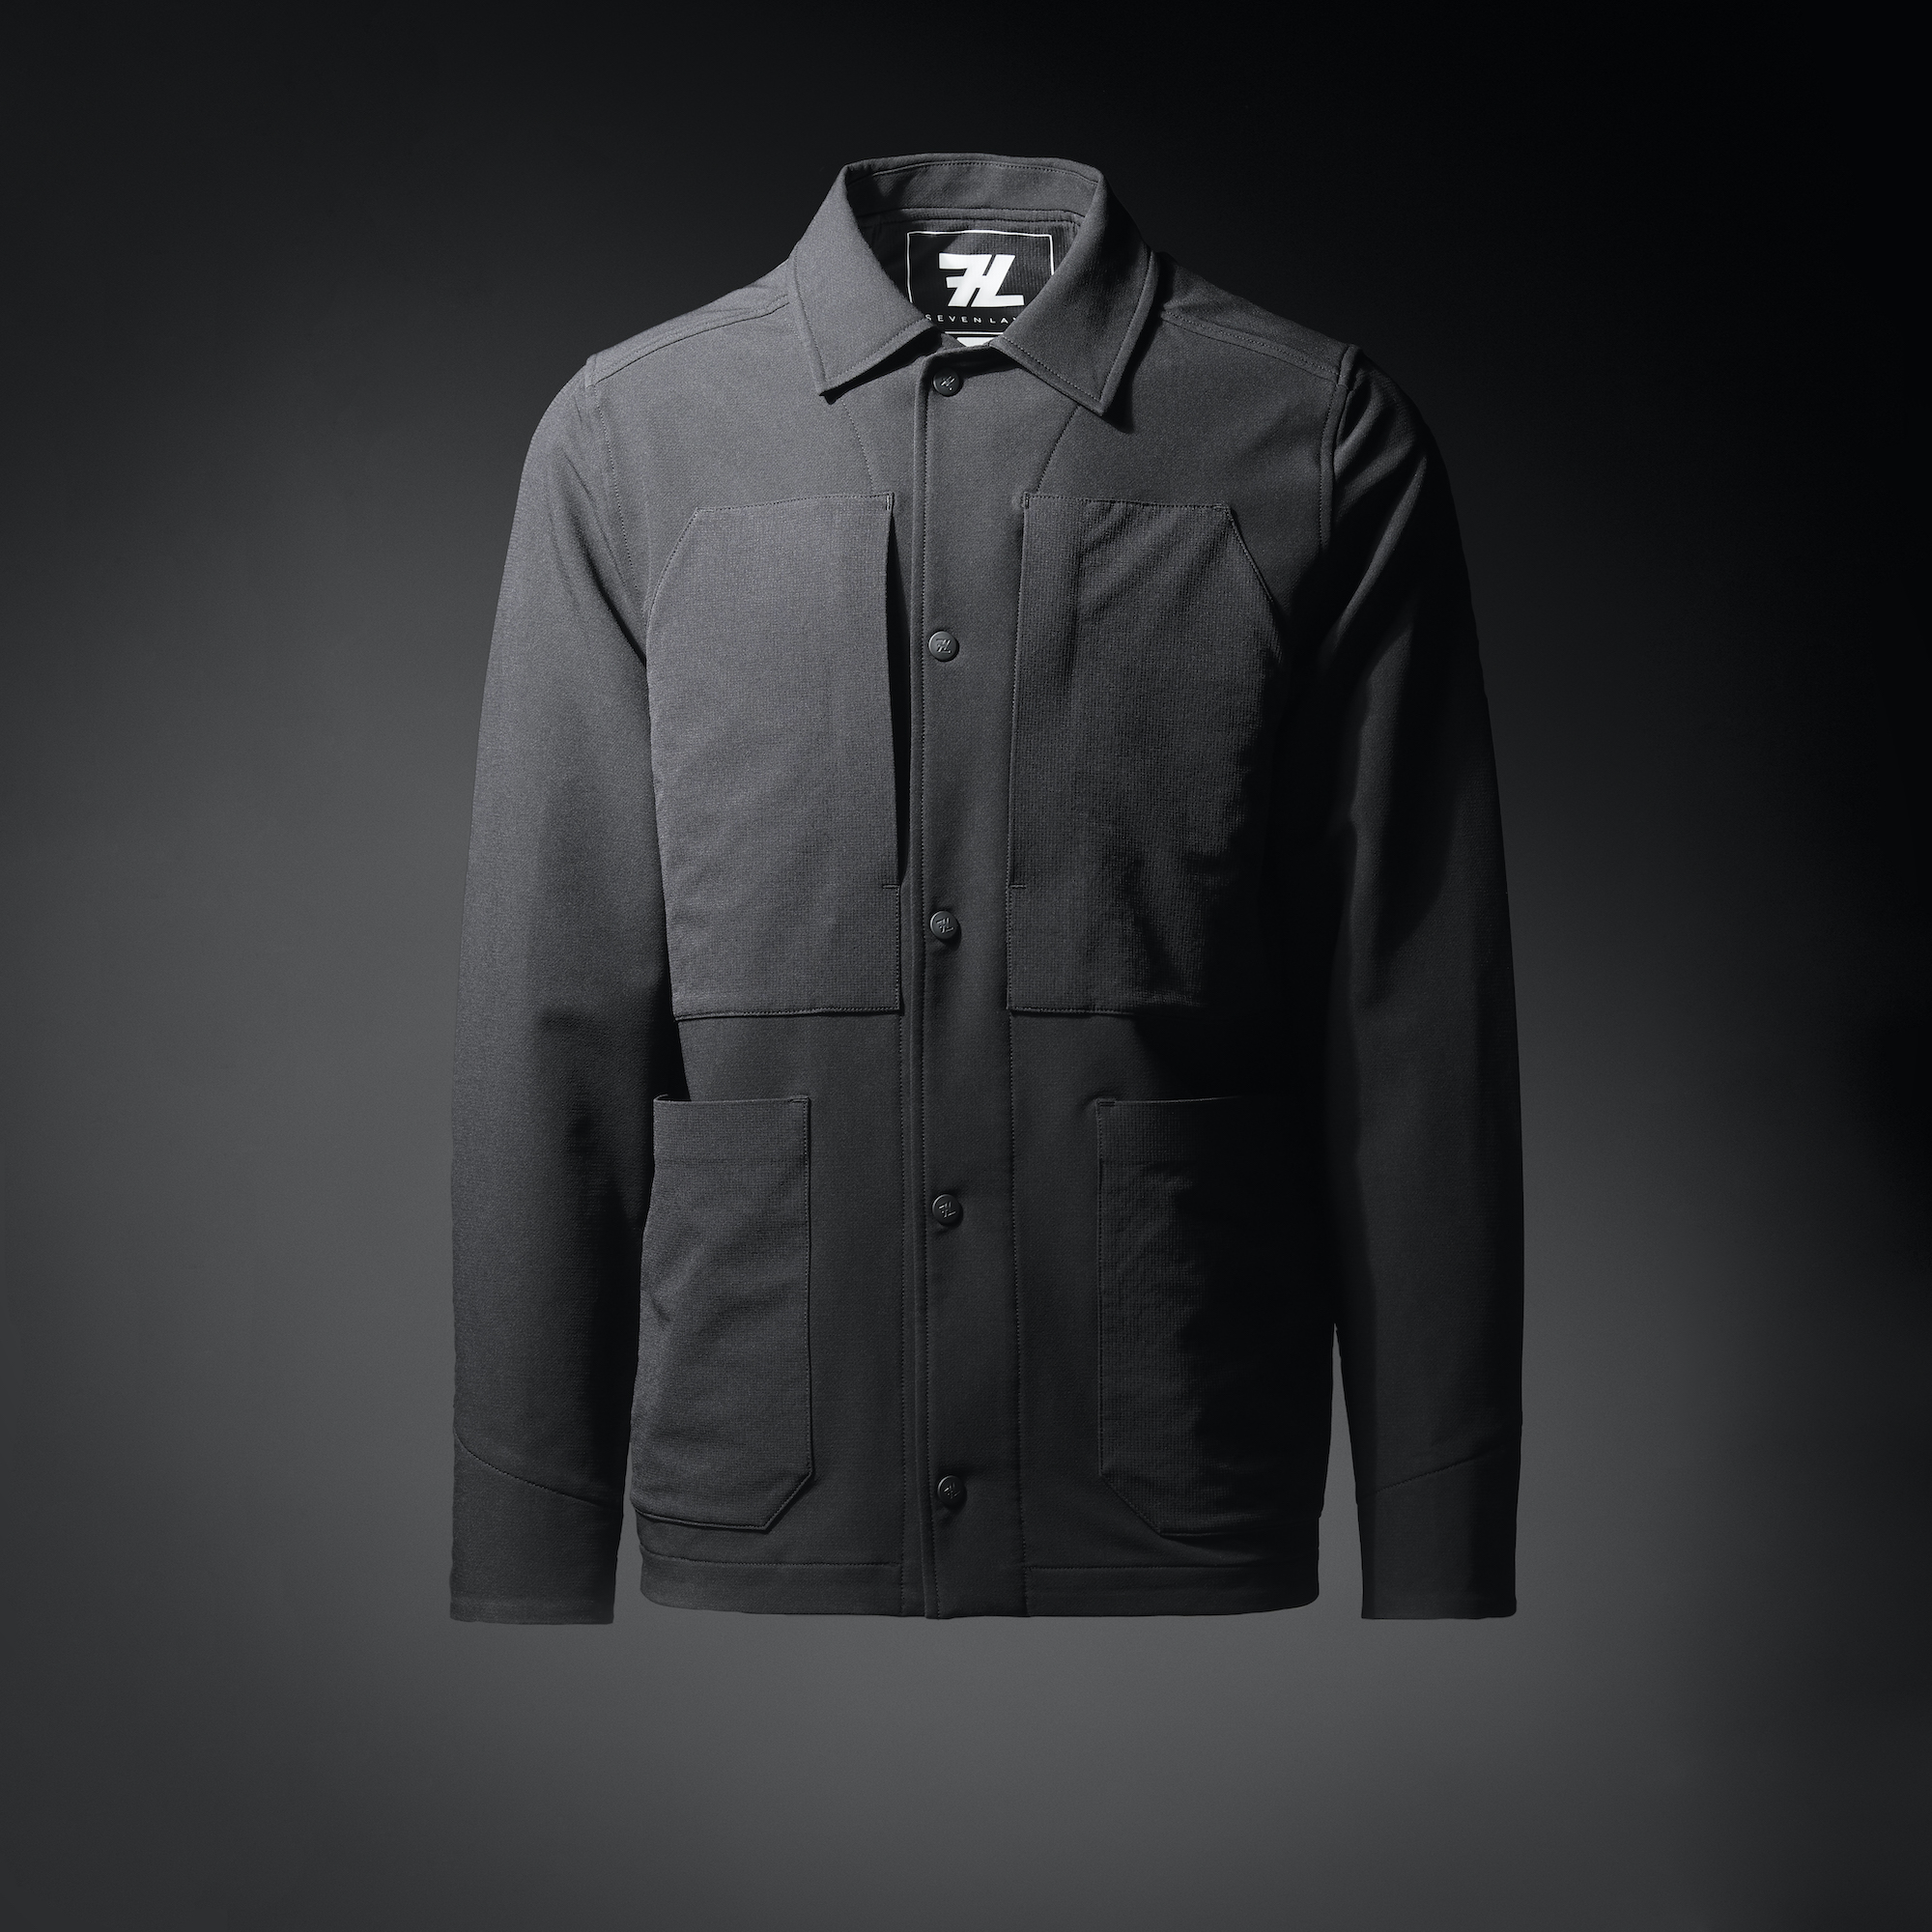 Jamie Lundy 7L SEVEN LAYER Master Shirt